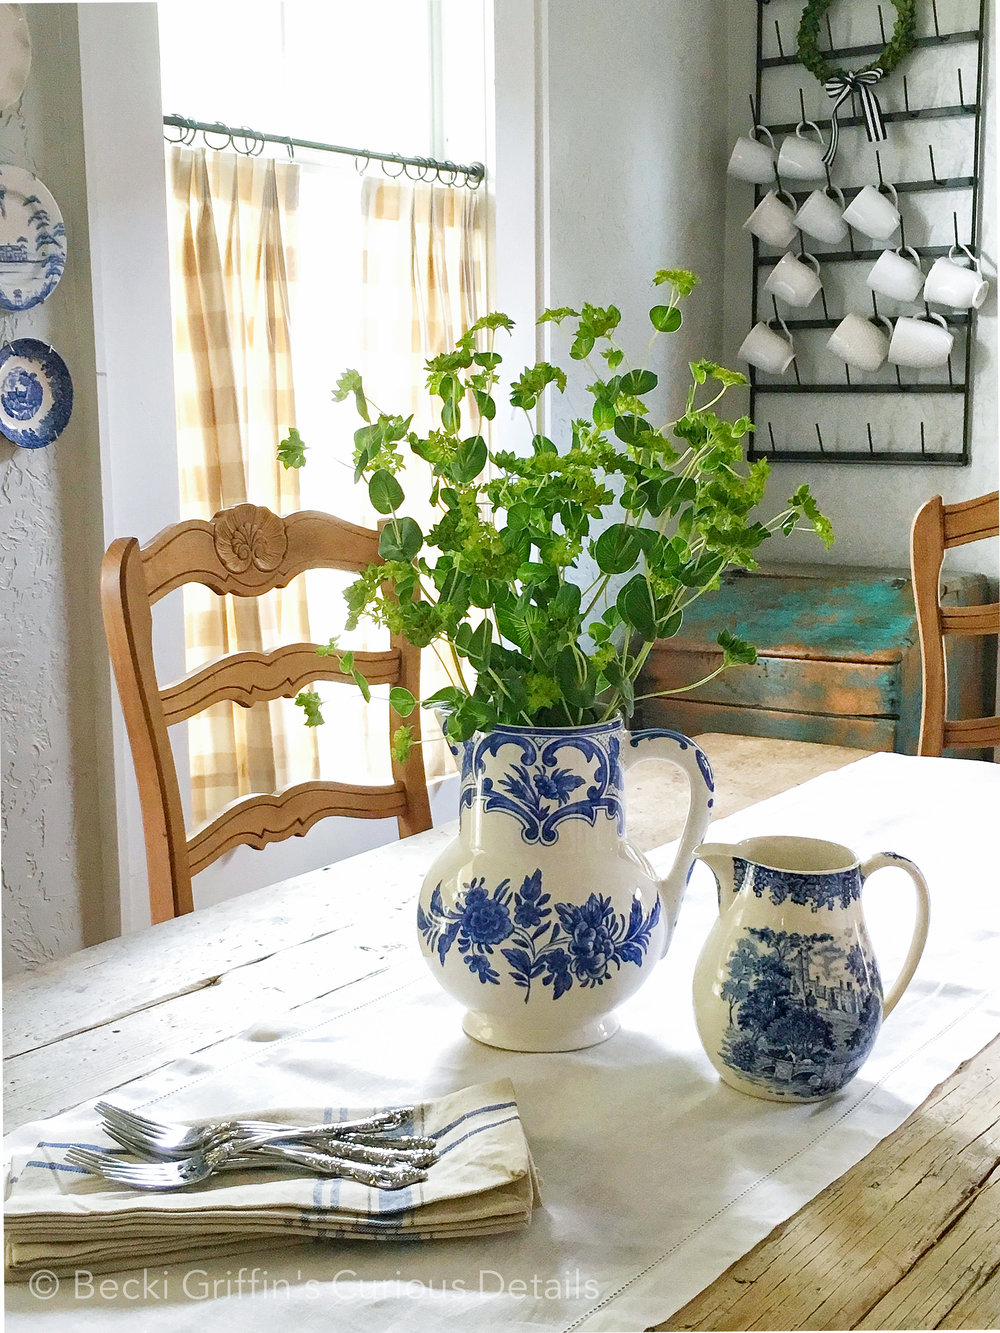 Detail of dining table styling with classic blue and white pitchers.